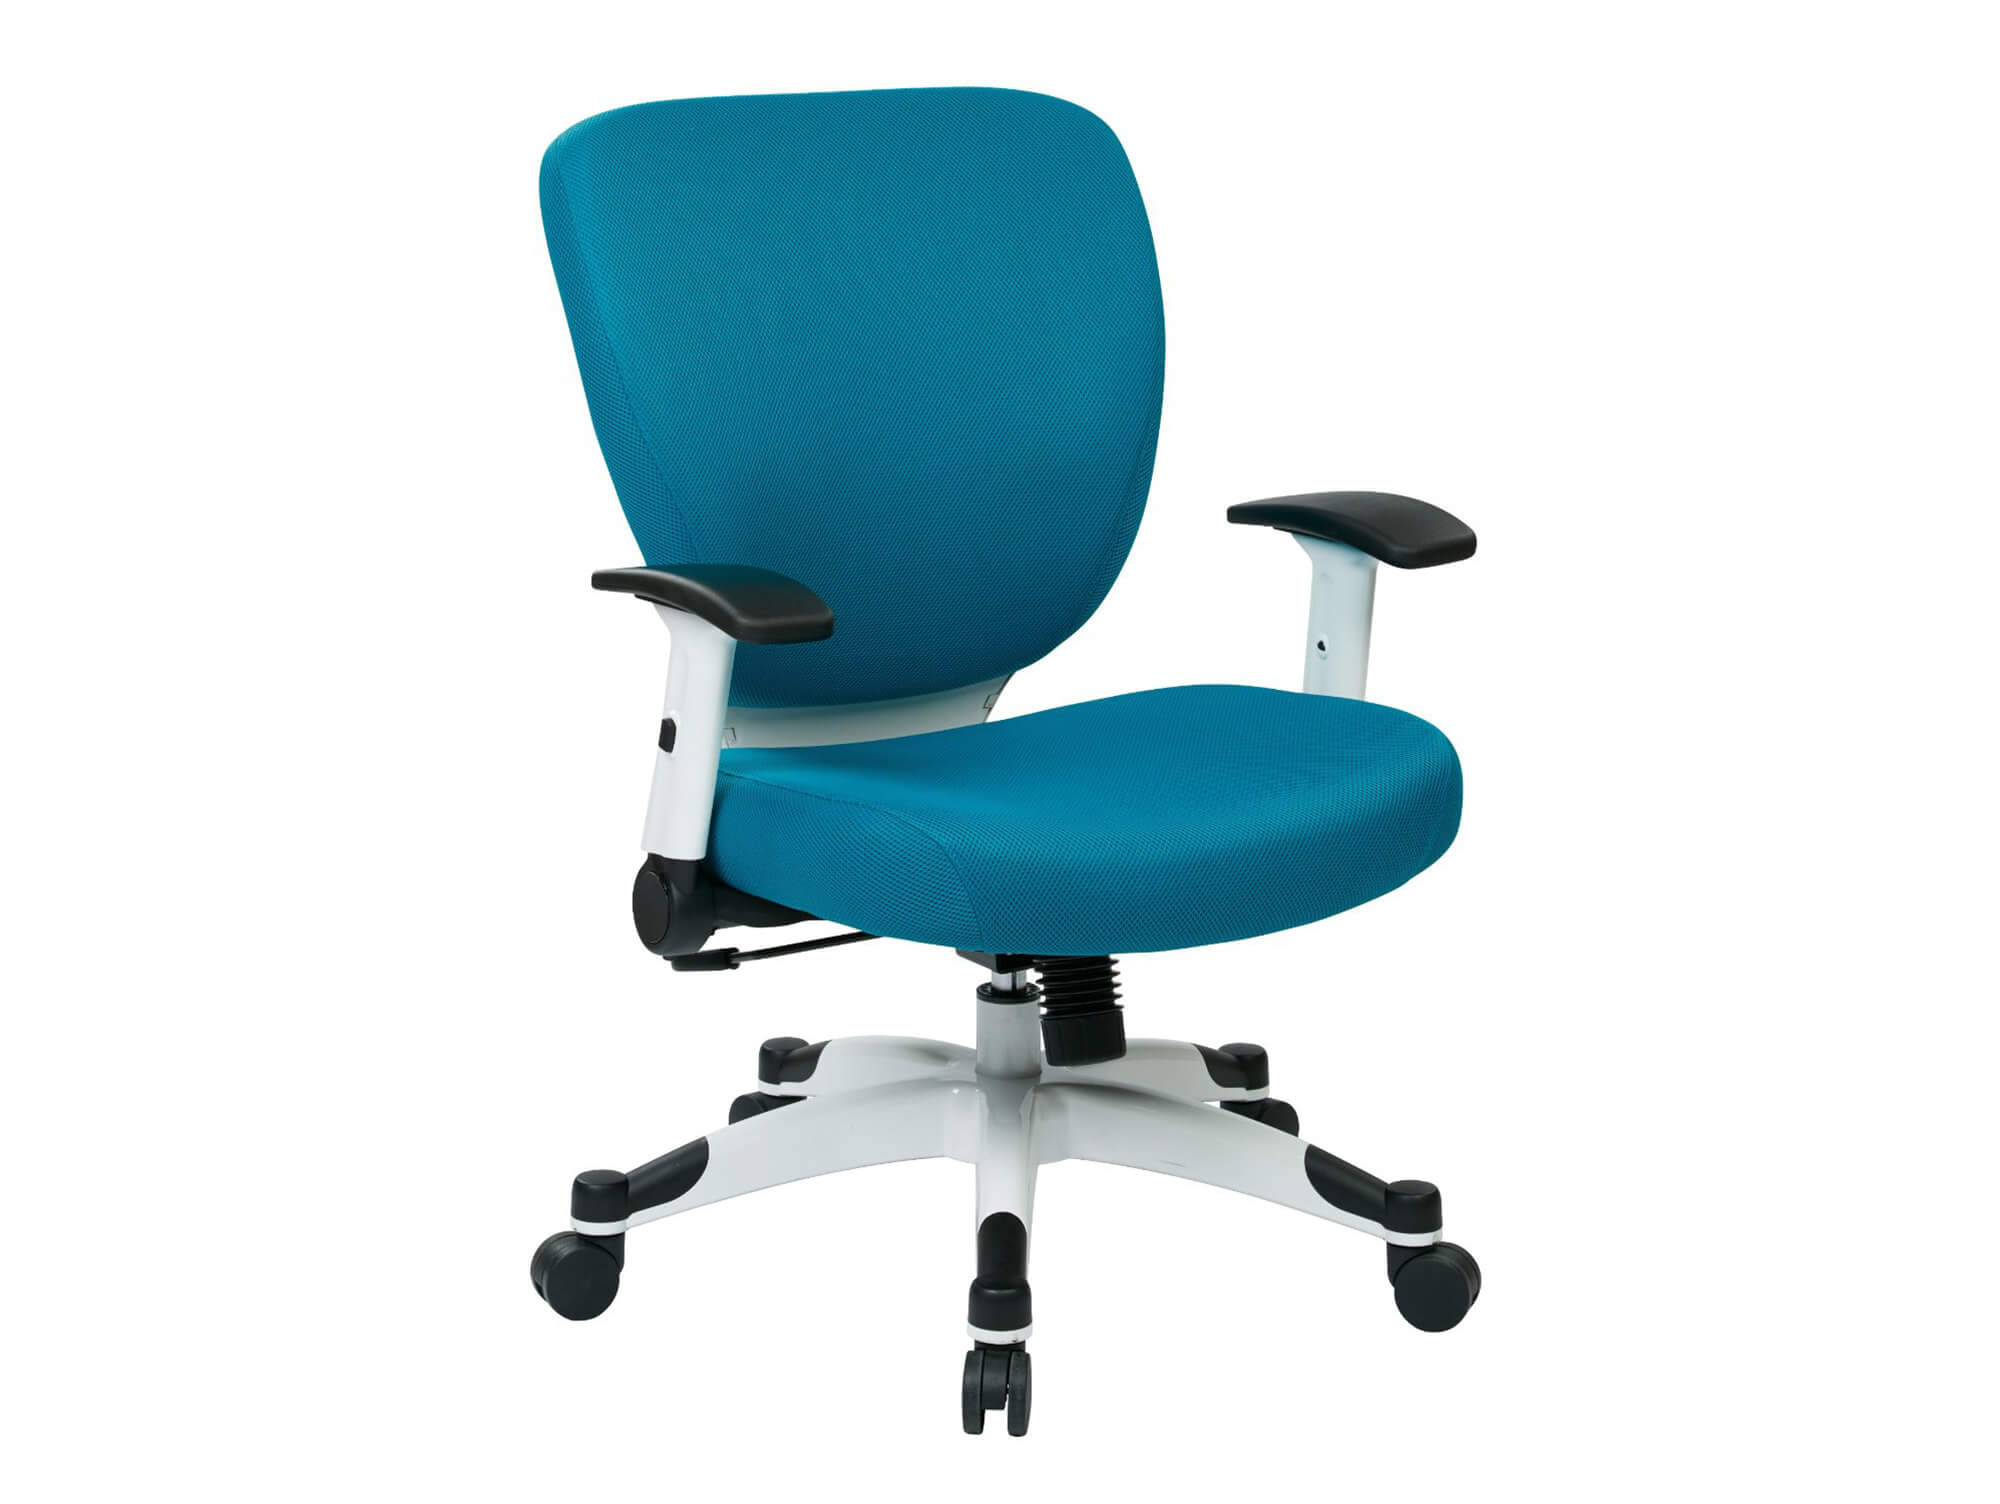 chairs-for-office-blue-desk-chair.jpg